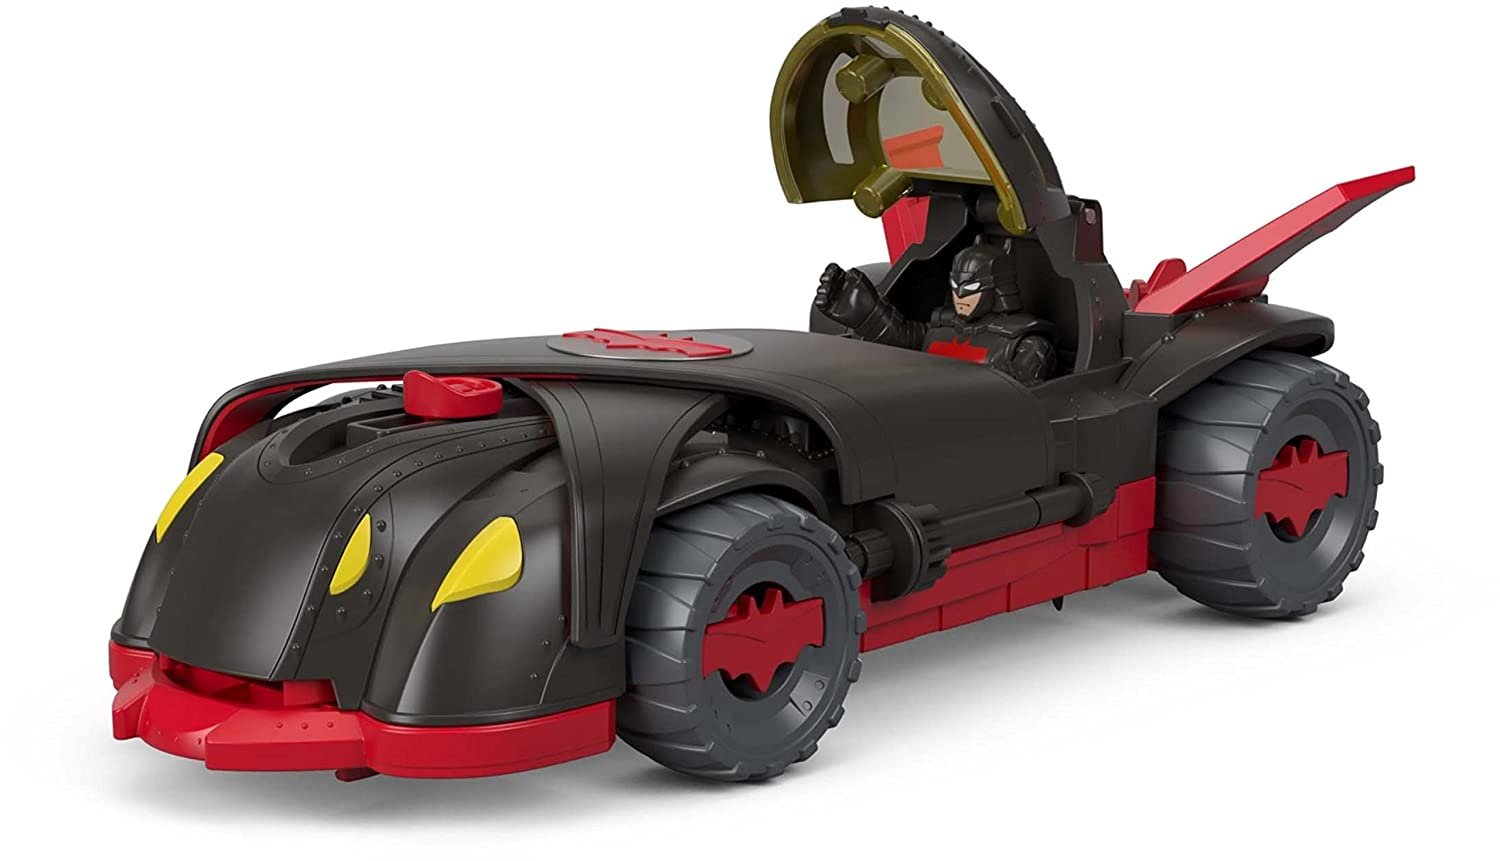 Fisher-Price Imaginext DC Super Friends Ninja Armor Batmobile Mattel FTG92